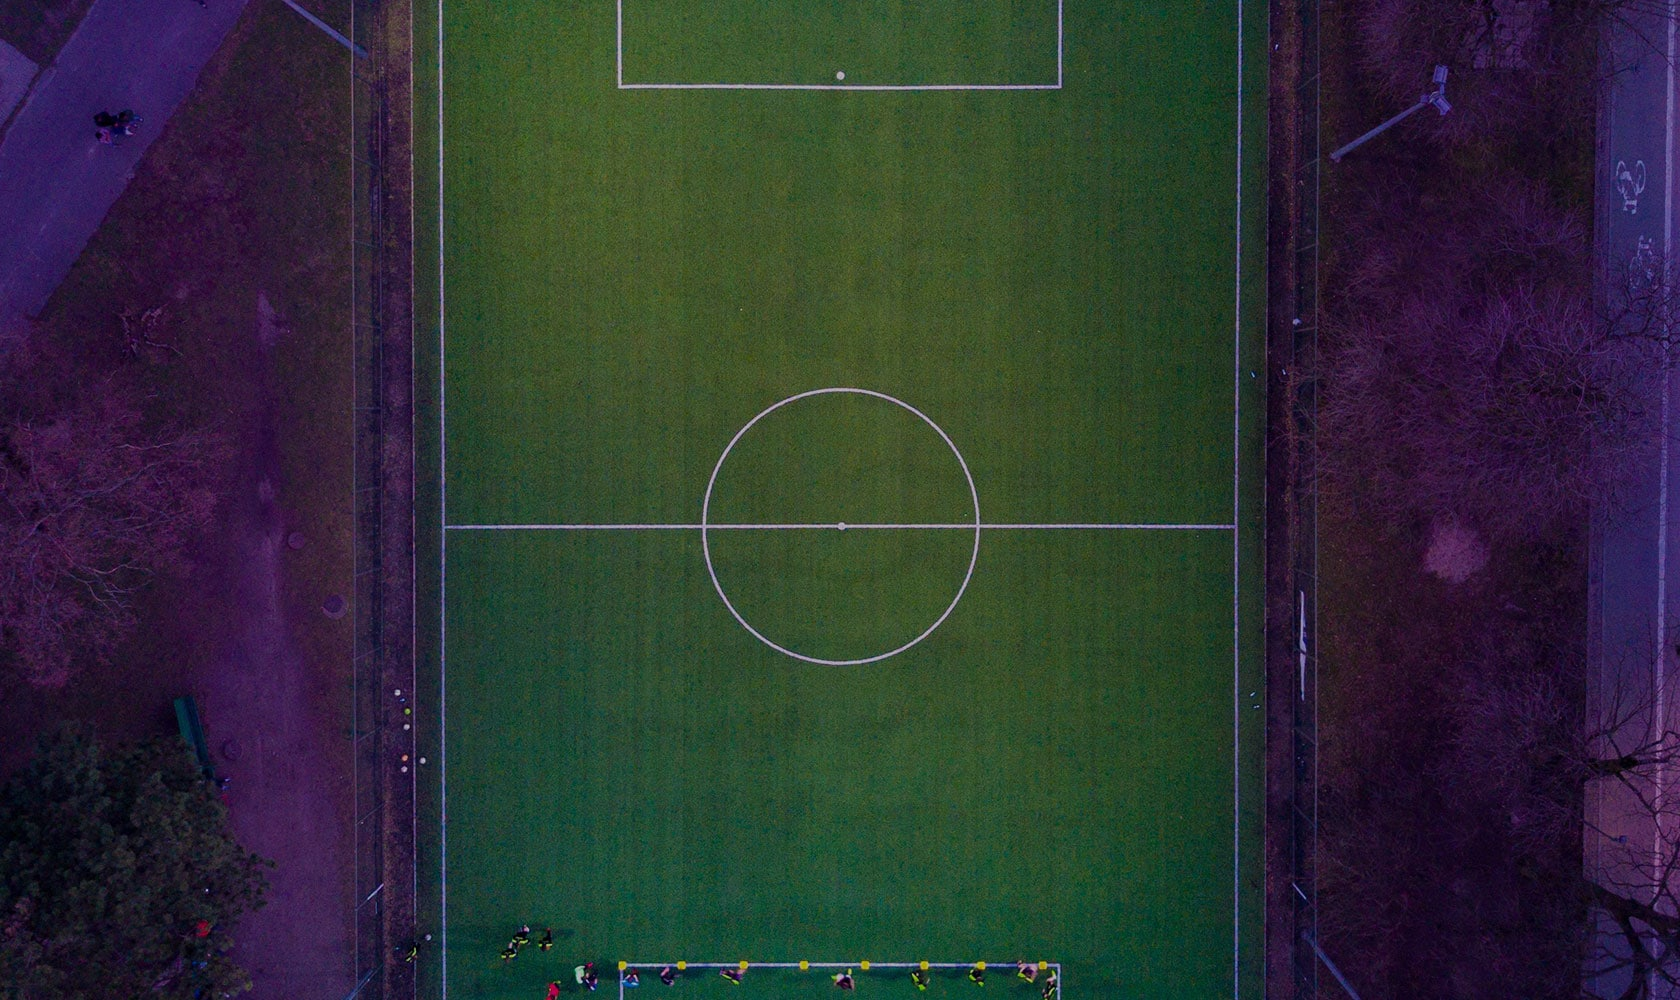 Aerial view of a football pitch.